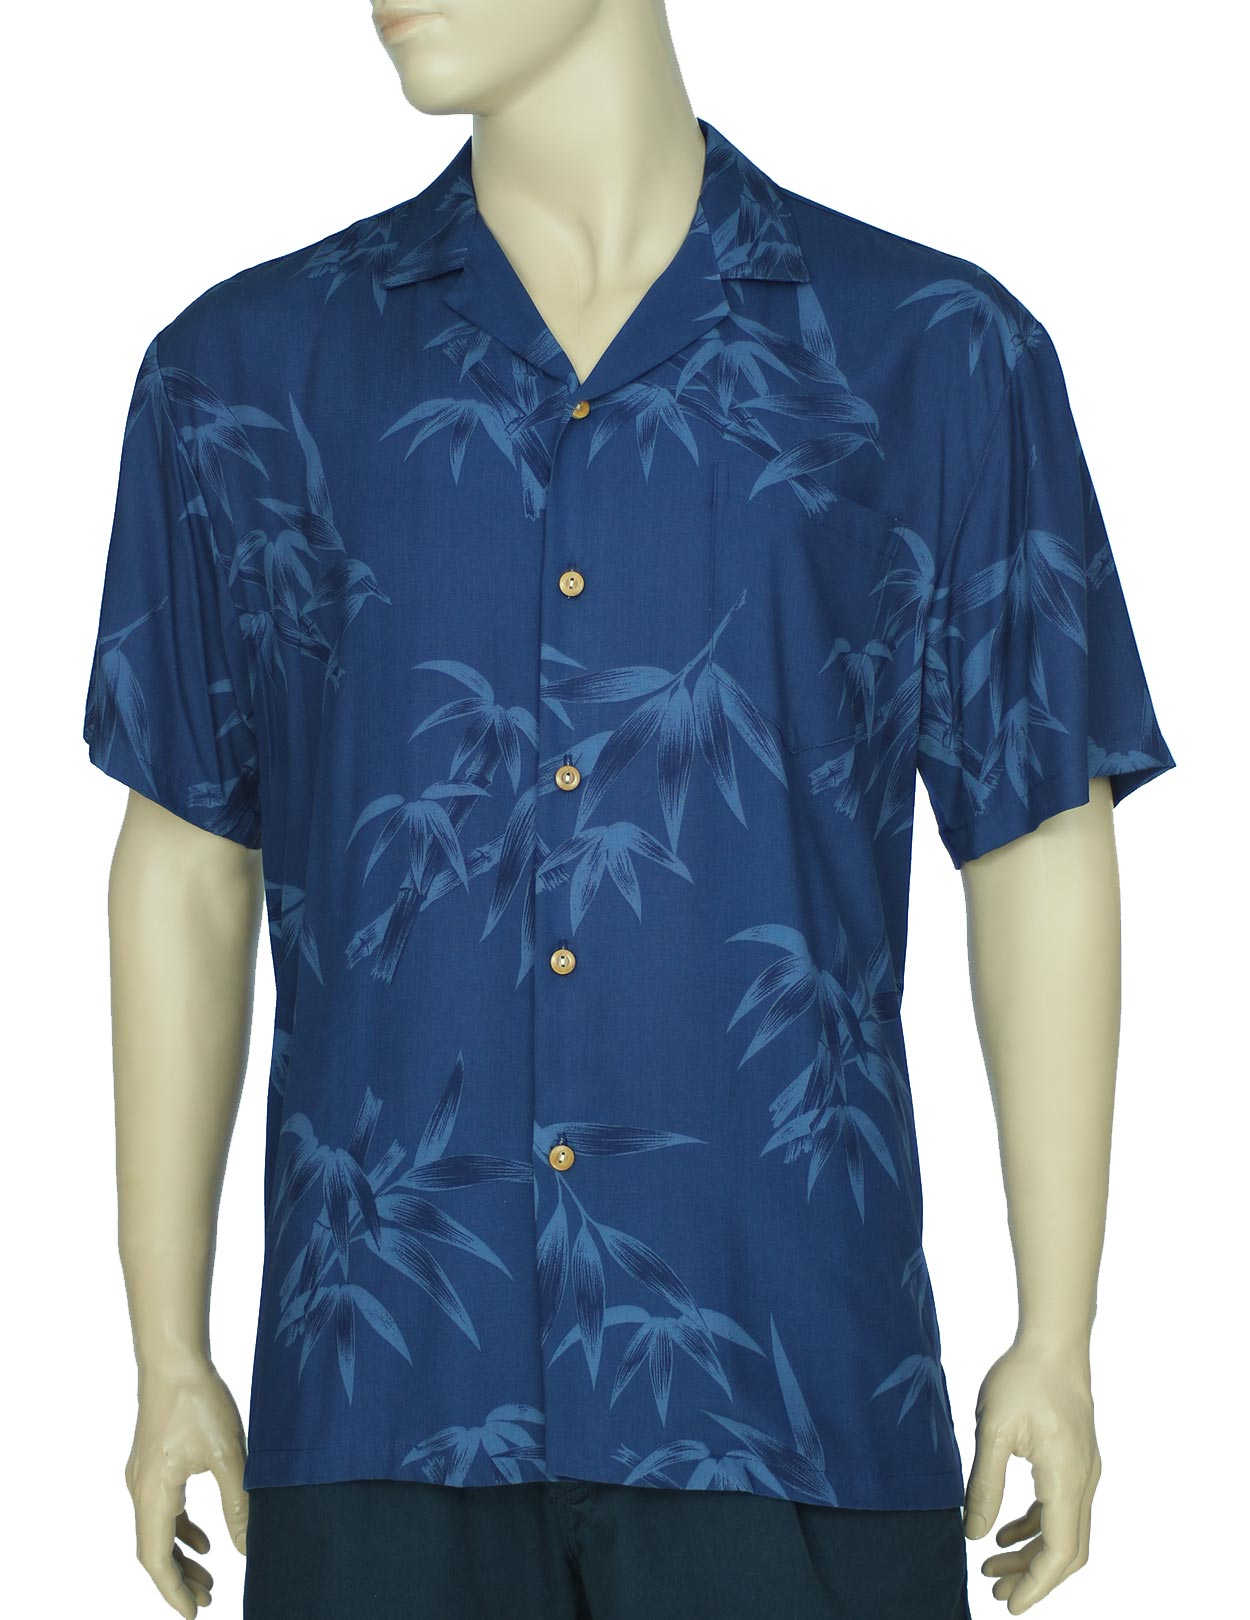 Bamboo Hawaii Aloha Rayon Shirt Shaka Time Hawaii